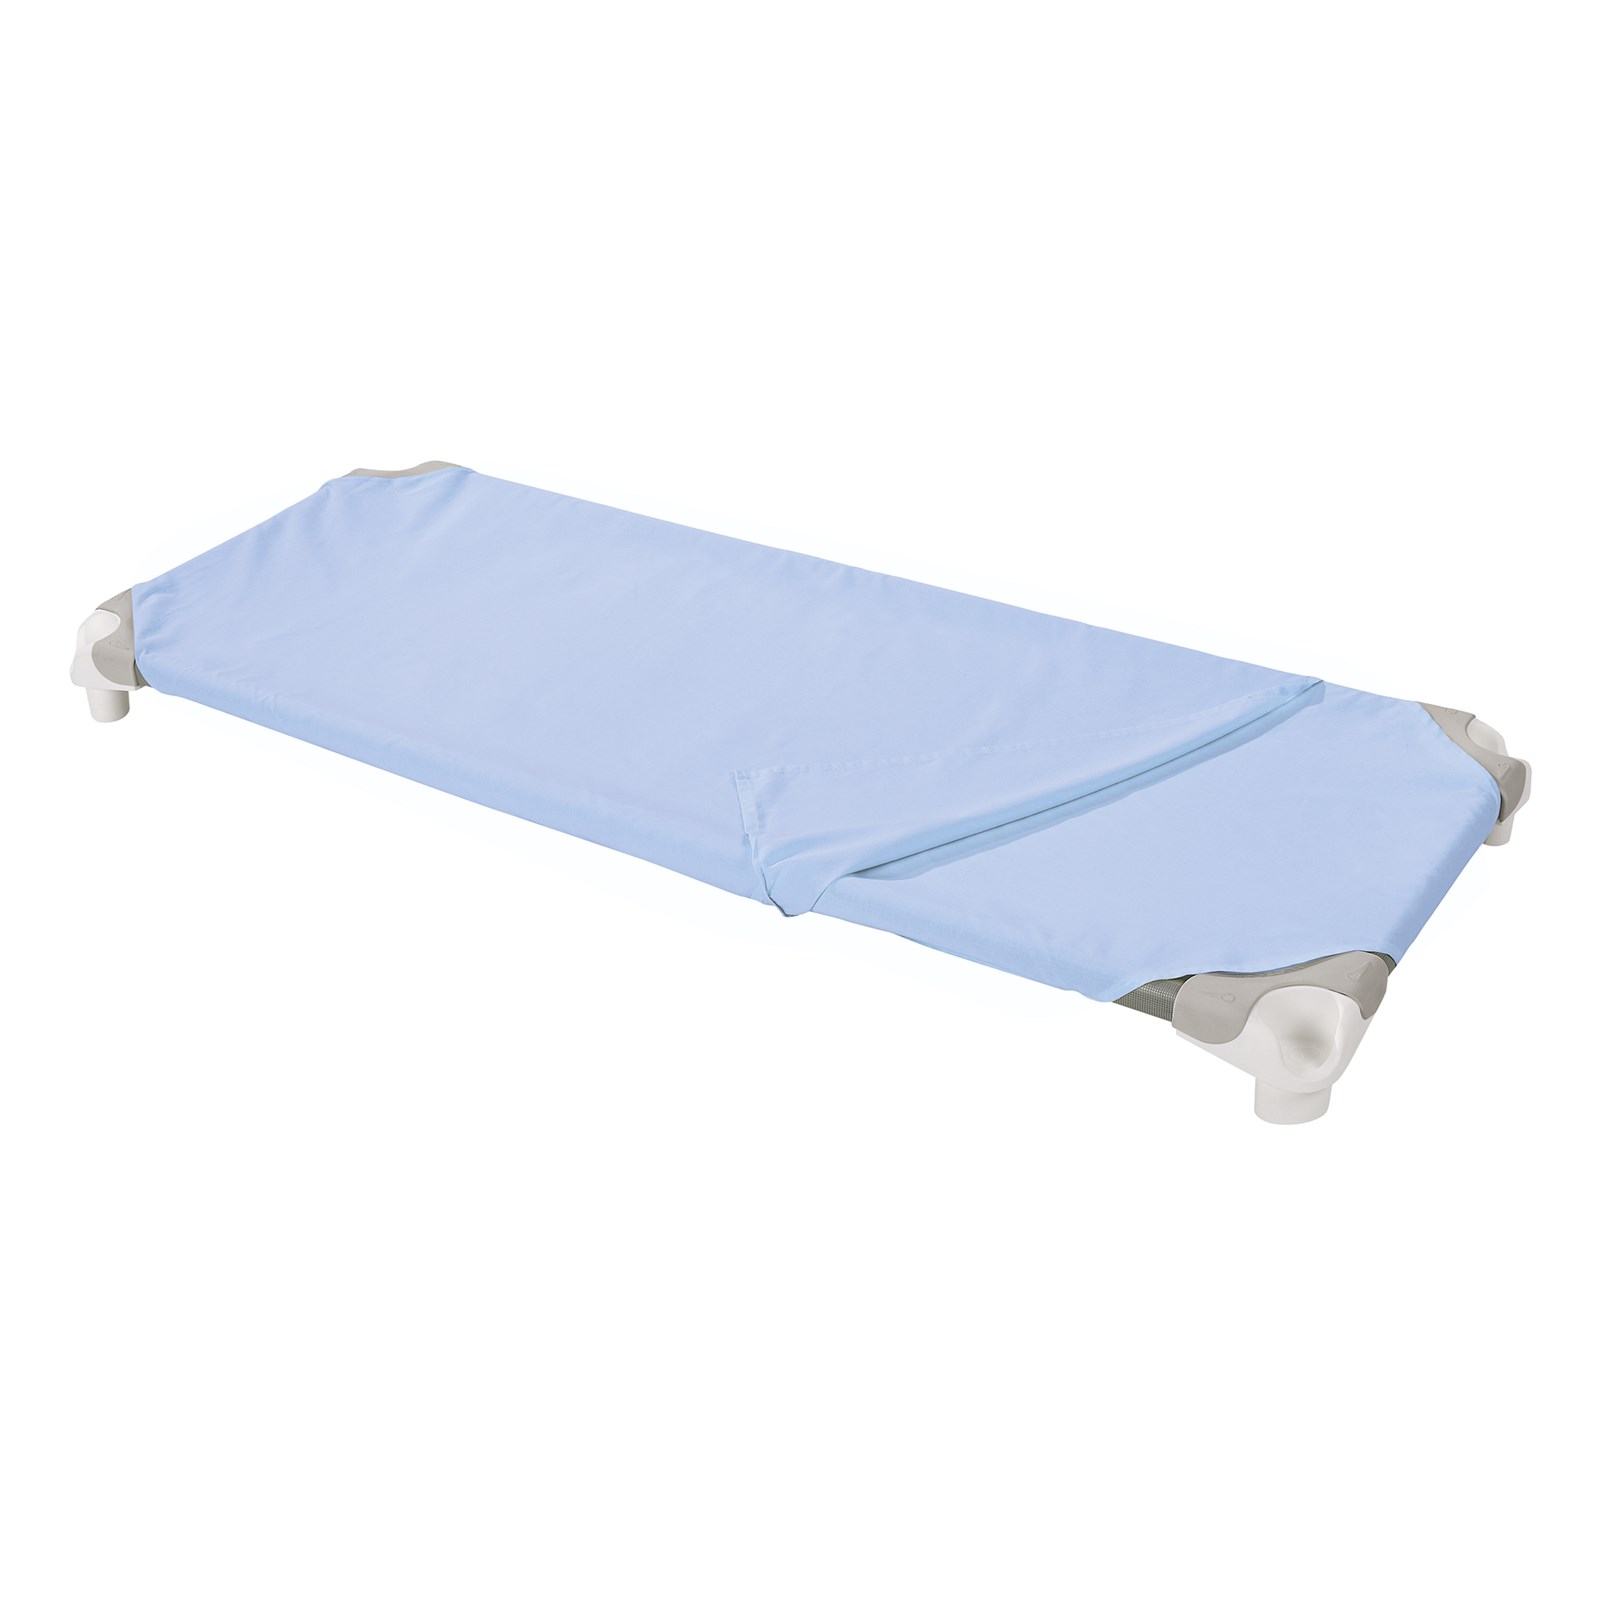 Blue Sack Style Sheet- Pack of 5